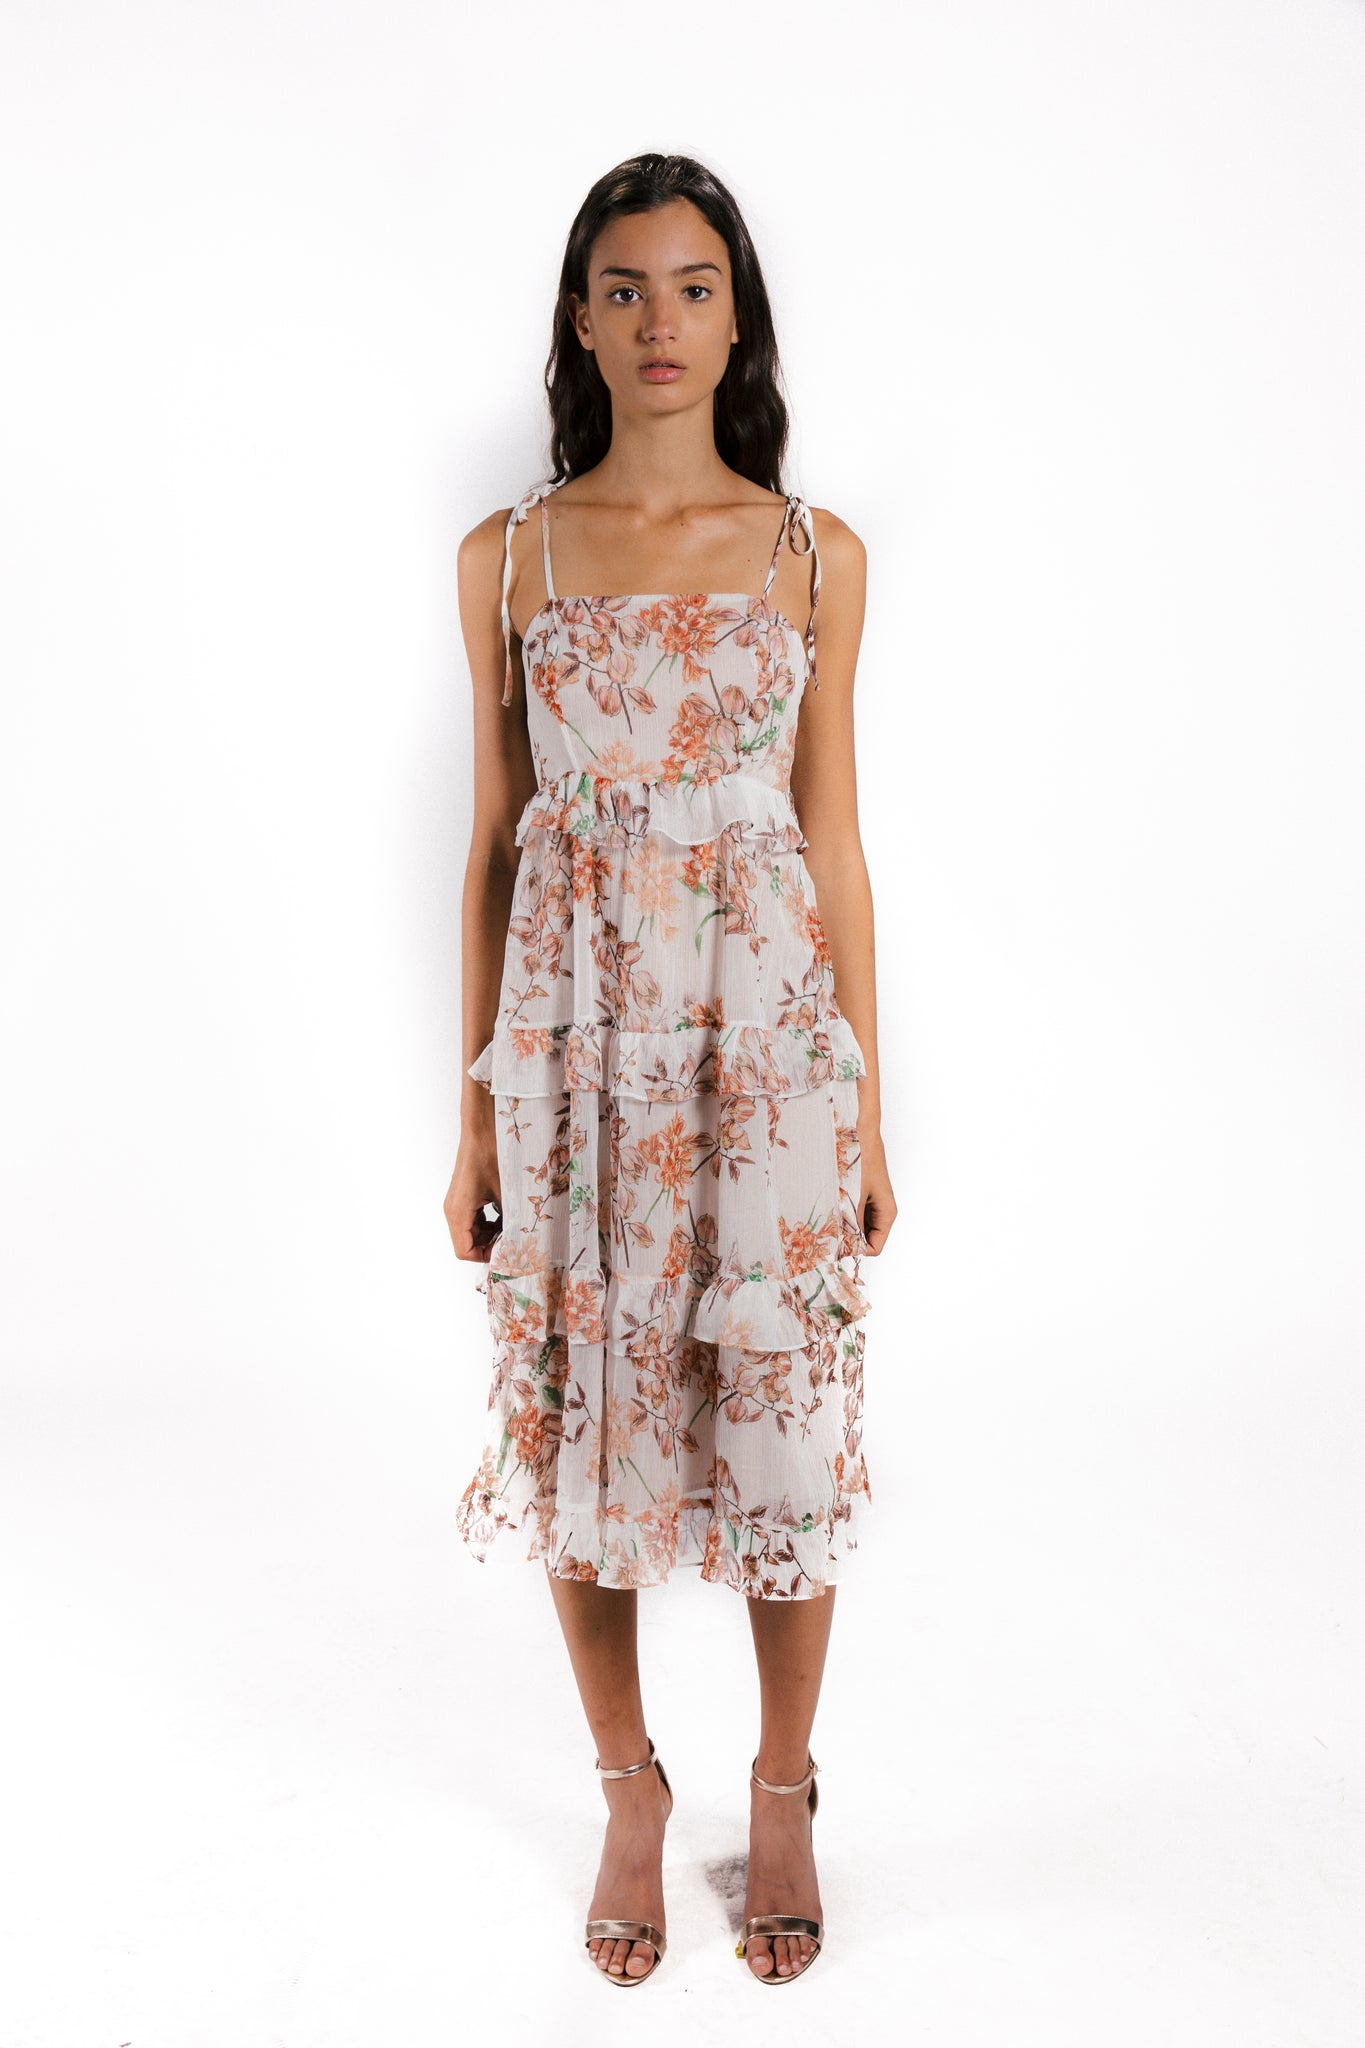 Lenon Collection. Strappy tiered ruffle dress. Crinkle chiffon in Orange wildflower print.